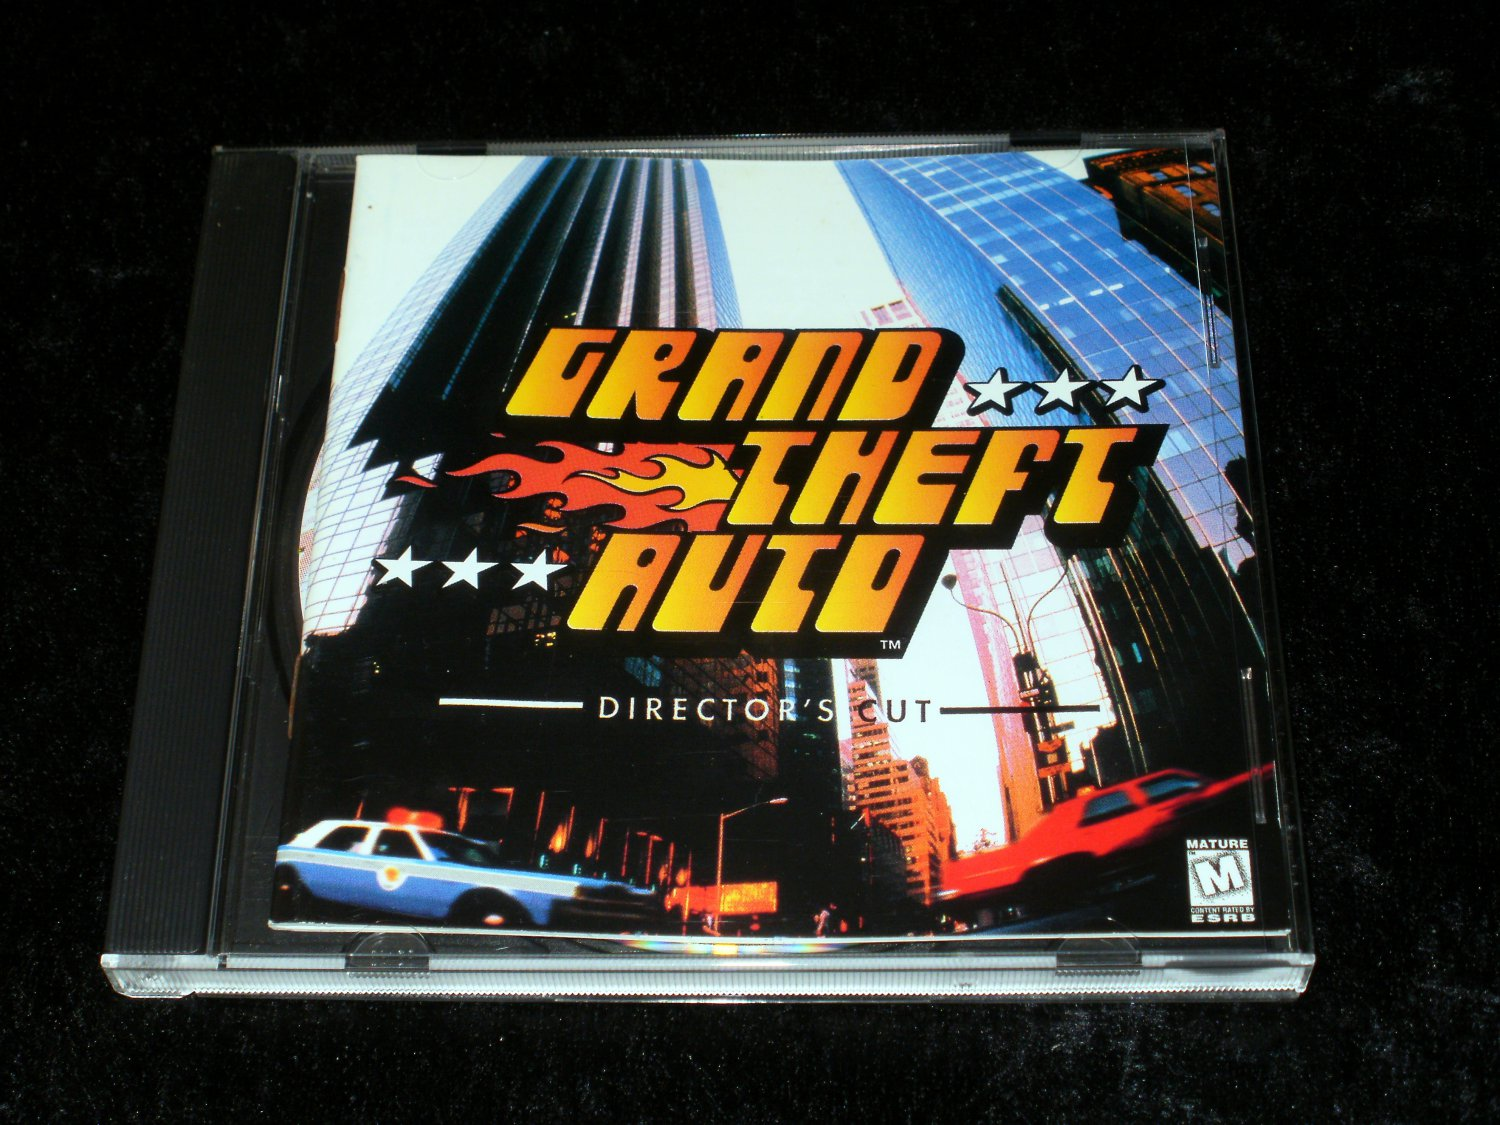 Grand Theft Auto Director's Cut - 1999 Gathering of Developers - IBM PC - With Manual